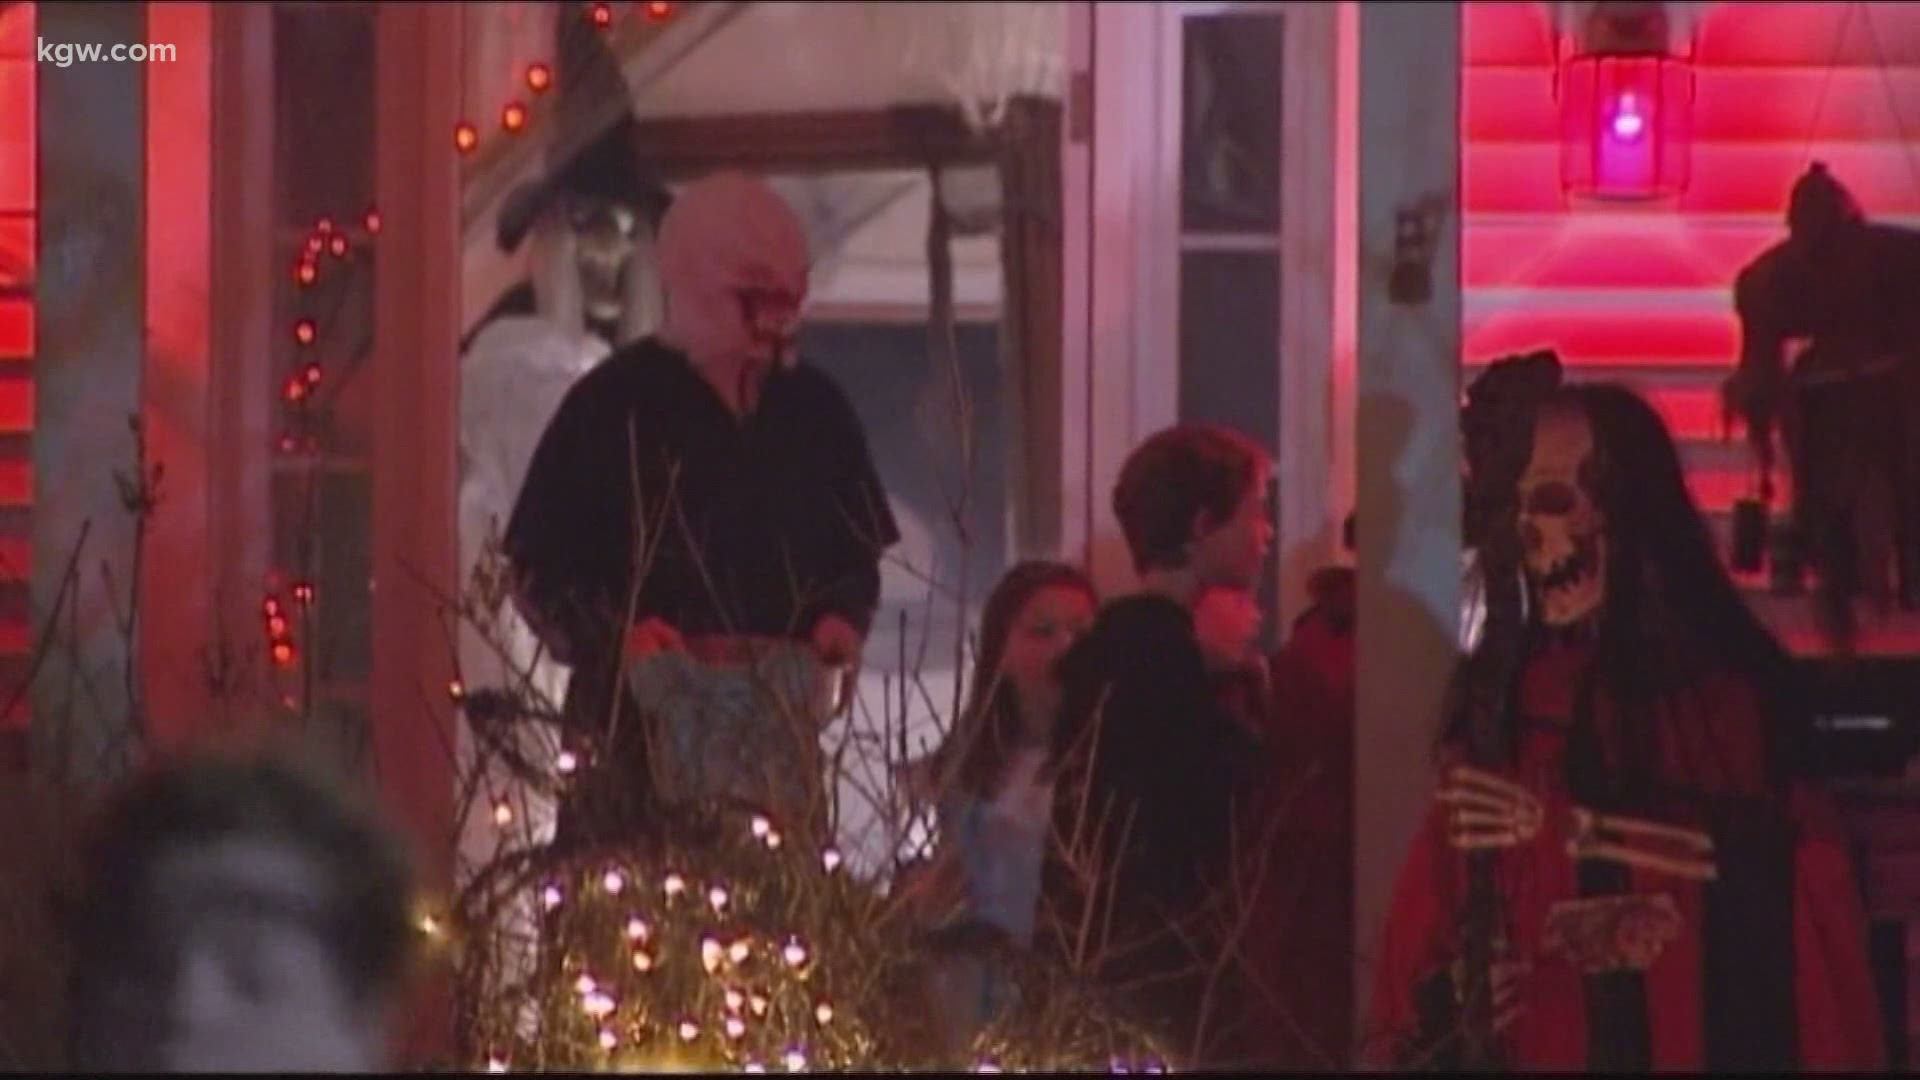 Halloween Events 2020 Vancouver, Wa What will Halloween look like in Portland in 2020? | kgw.com